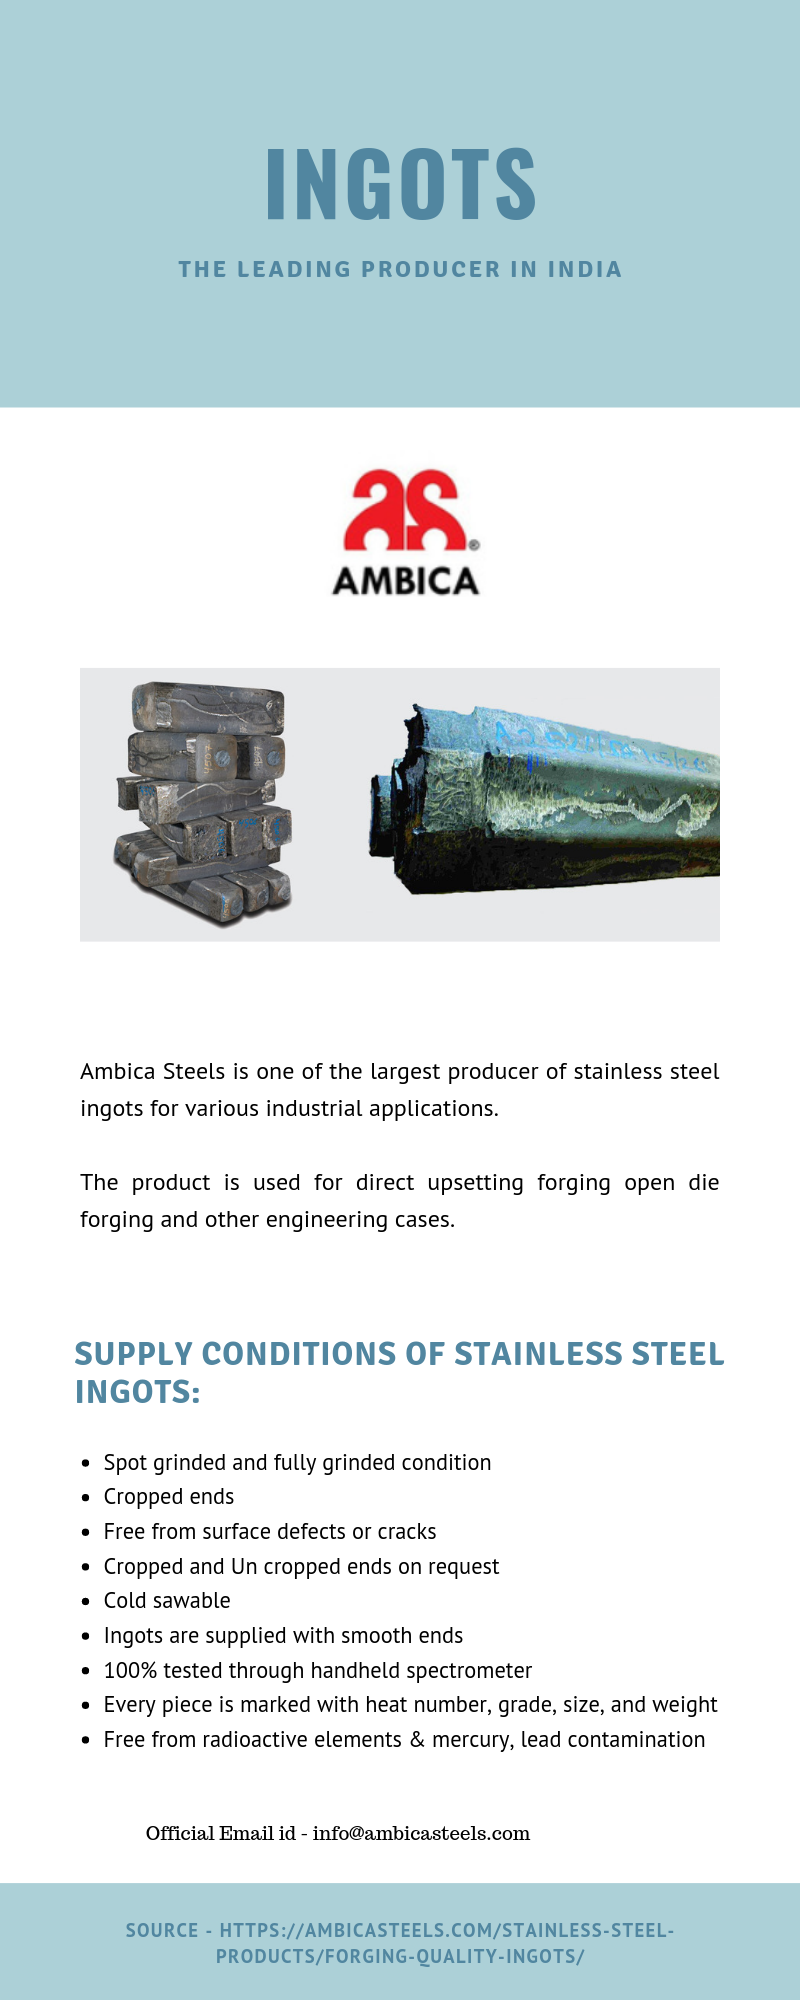 Ambica Steel is one of the Largest Producer of Stainless Steel Ingots